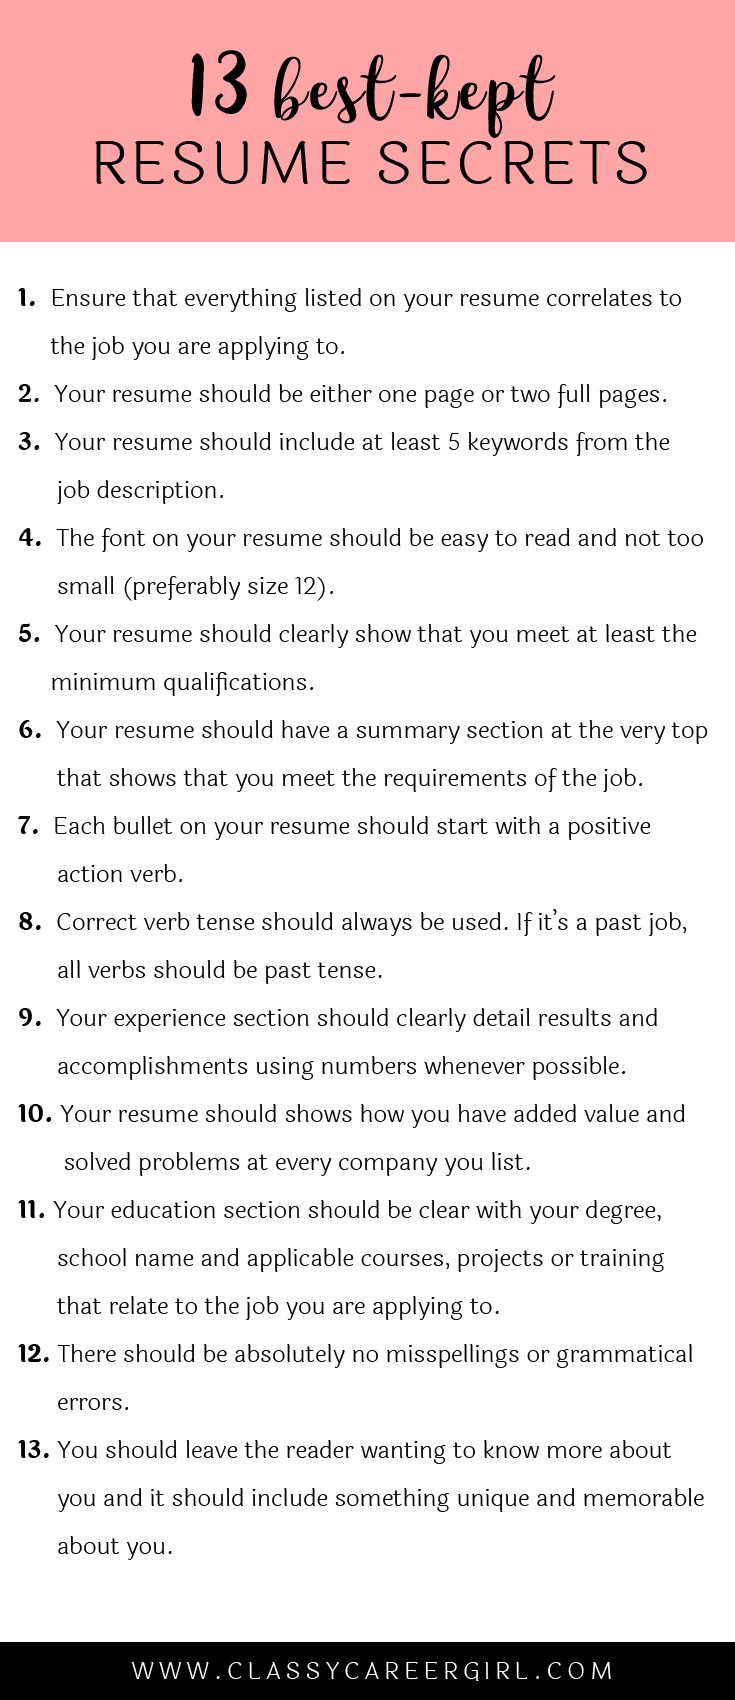 Picnictoimpeachus  Mesmerizing  Ideas About Resume On Pinterest  Cv Format Resume Cv And  With Lovable Some Hiring Managers Will Toss Your Resume Out If You Dont Know These  With Beauteous Child Care Director Resume Also Worst Resumes Ever In Addition Office Manager Resume Skills And Babysitting Resume Sample As Well As Help Me Build My Resume Additionally How To Format References On Resume From Pinterestcom With Picnictoimpeachus  Lovable  Ideas About Resume On Pinterest  Cv Format Resume Cv And  With Beauteous Some Hiring Managers Will Toss Your Resume Out If You Dont Know These  And Mesmerizing Child Care Director Resume Also Worst Resumes Ever In Addition Office Manager Resume Skills From Pinterestcom